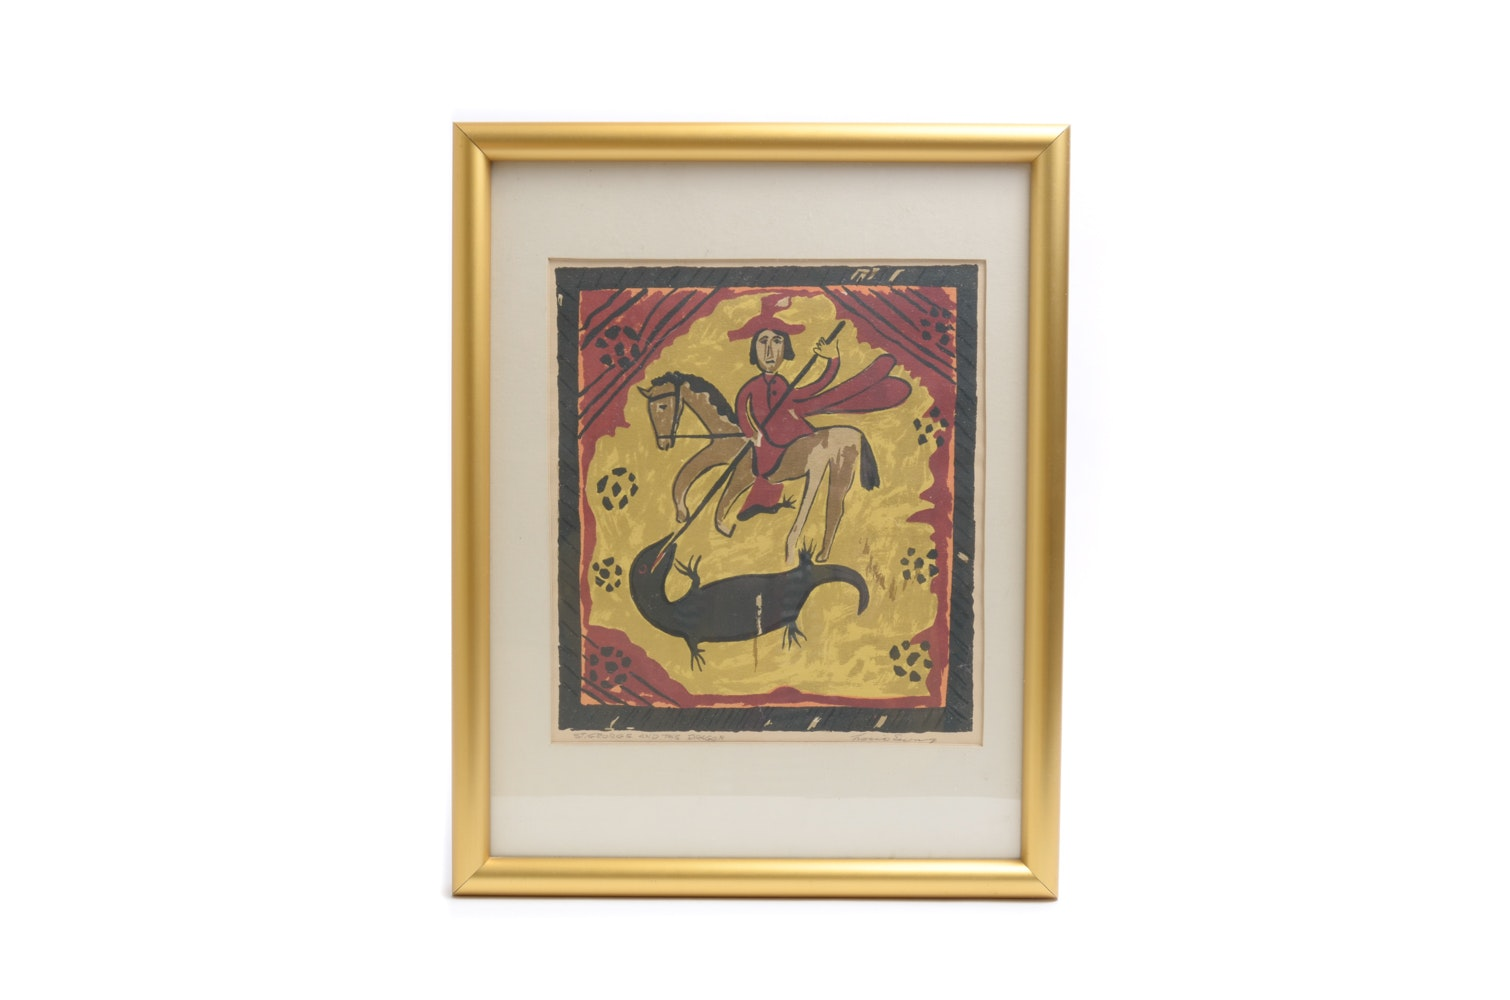 """Hand Pulled Print on Paper Titled """"St. George and the Dragon"""""""